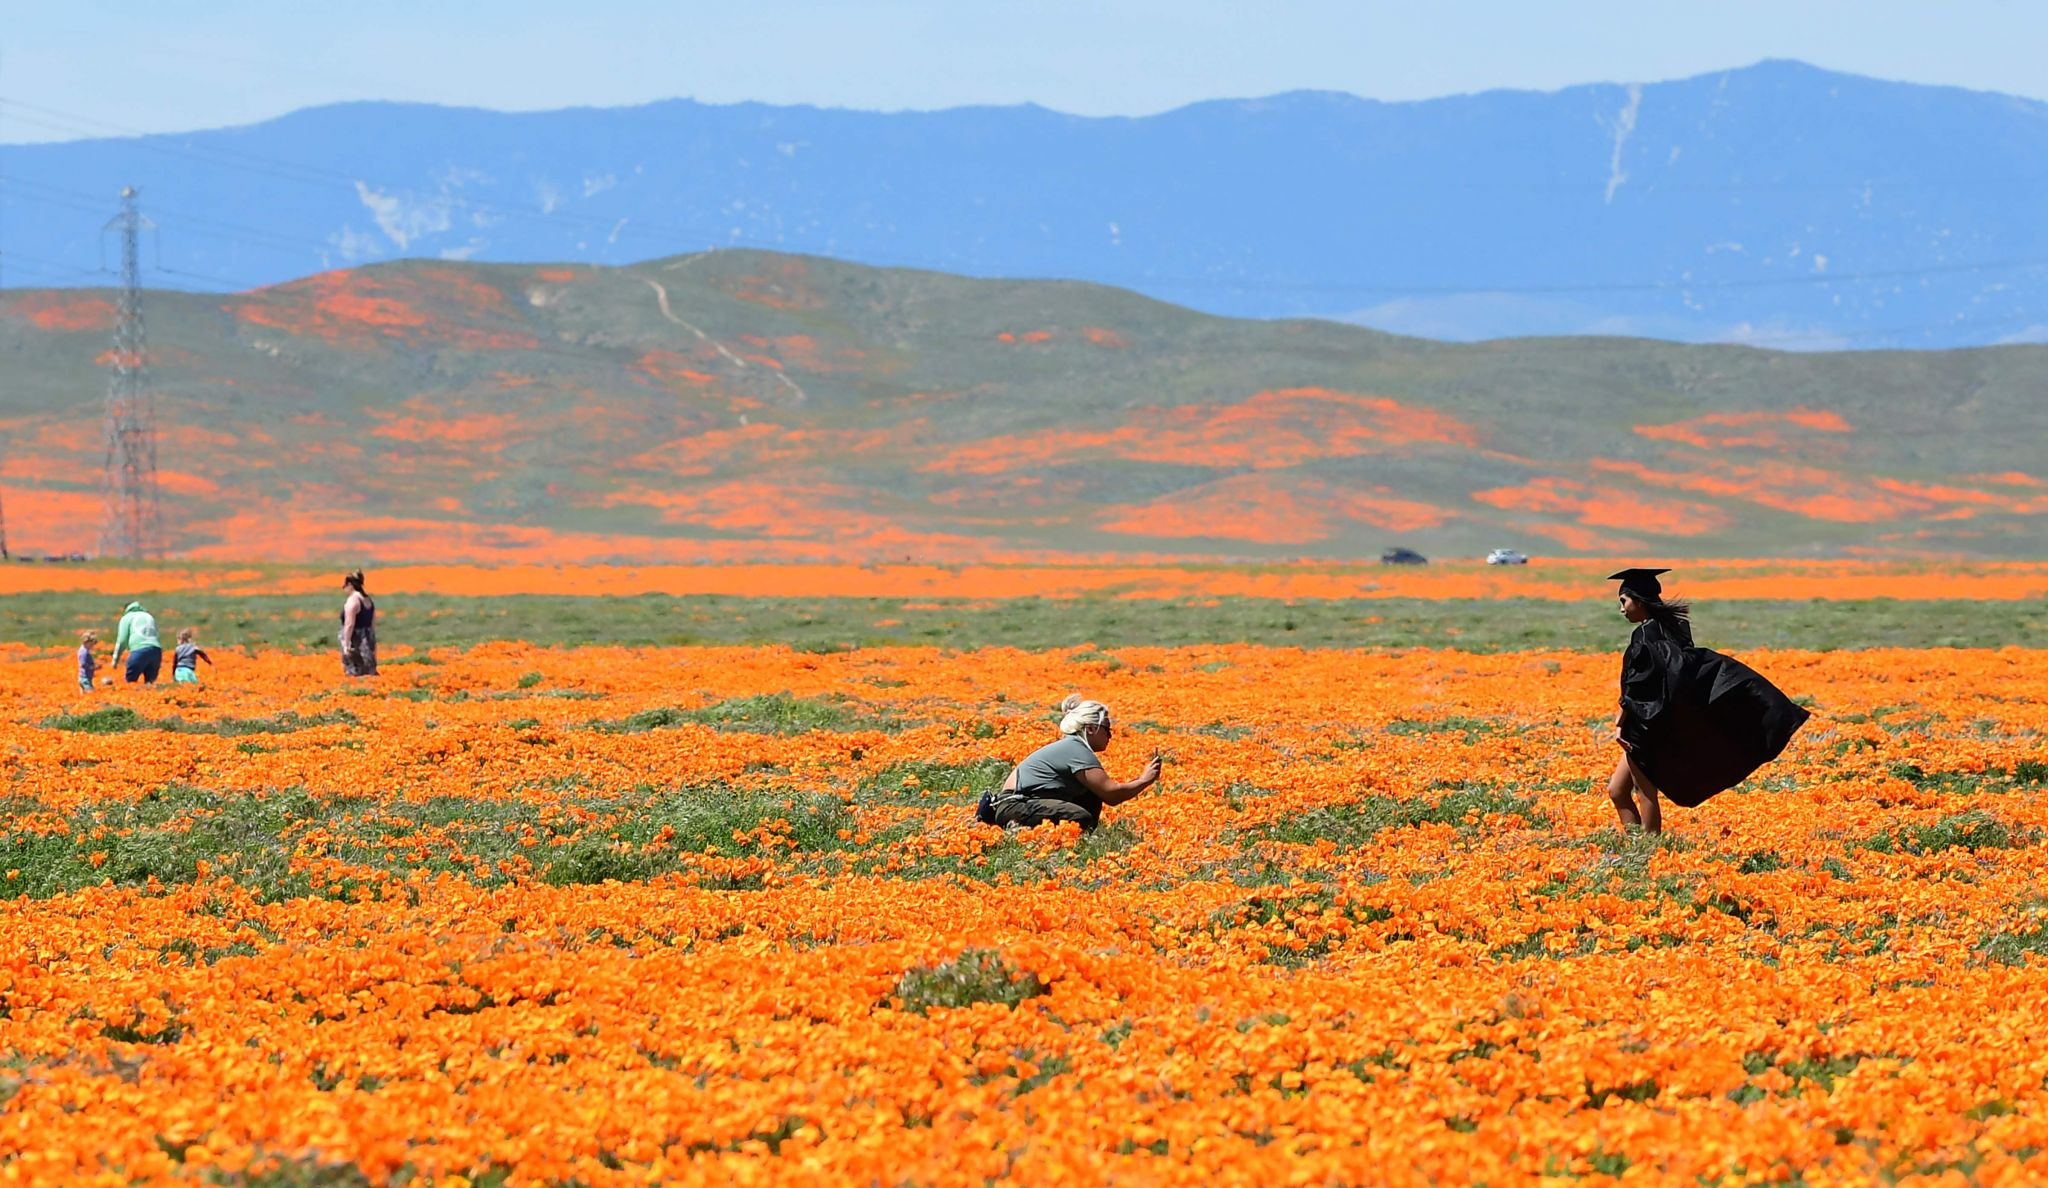 Not Obeying Photo Takers Leave Home To See California Poppies